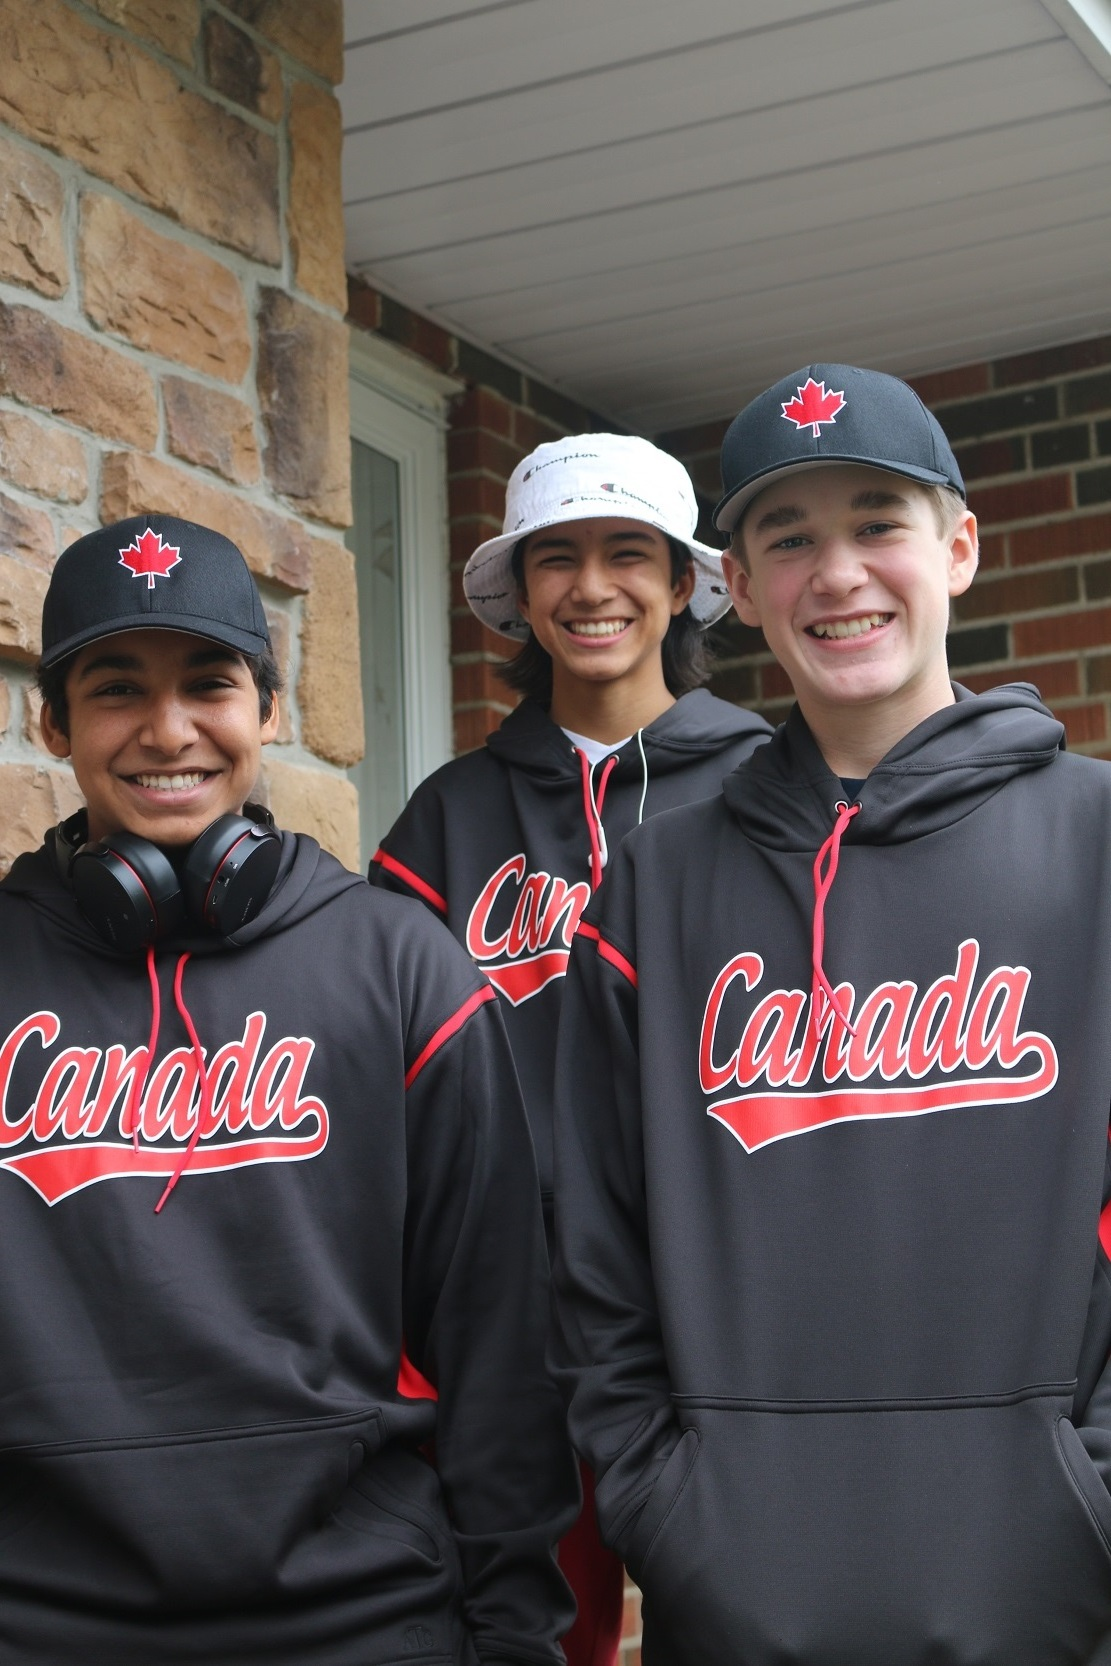 Pals Dominic Lora, left, Keiran Martini-Wong and Lachlan Maude before heading south. Obviously one player removed his hat from Gilligan's Island when the games began. Photo: Saskia Martini-Wong Studios.